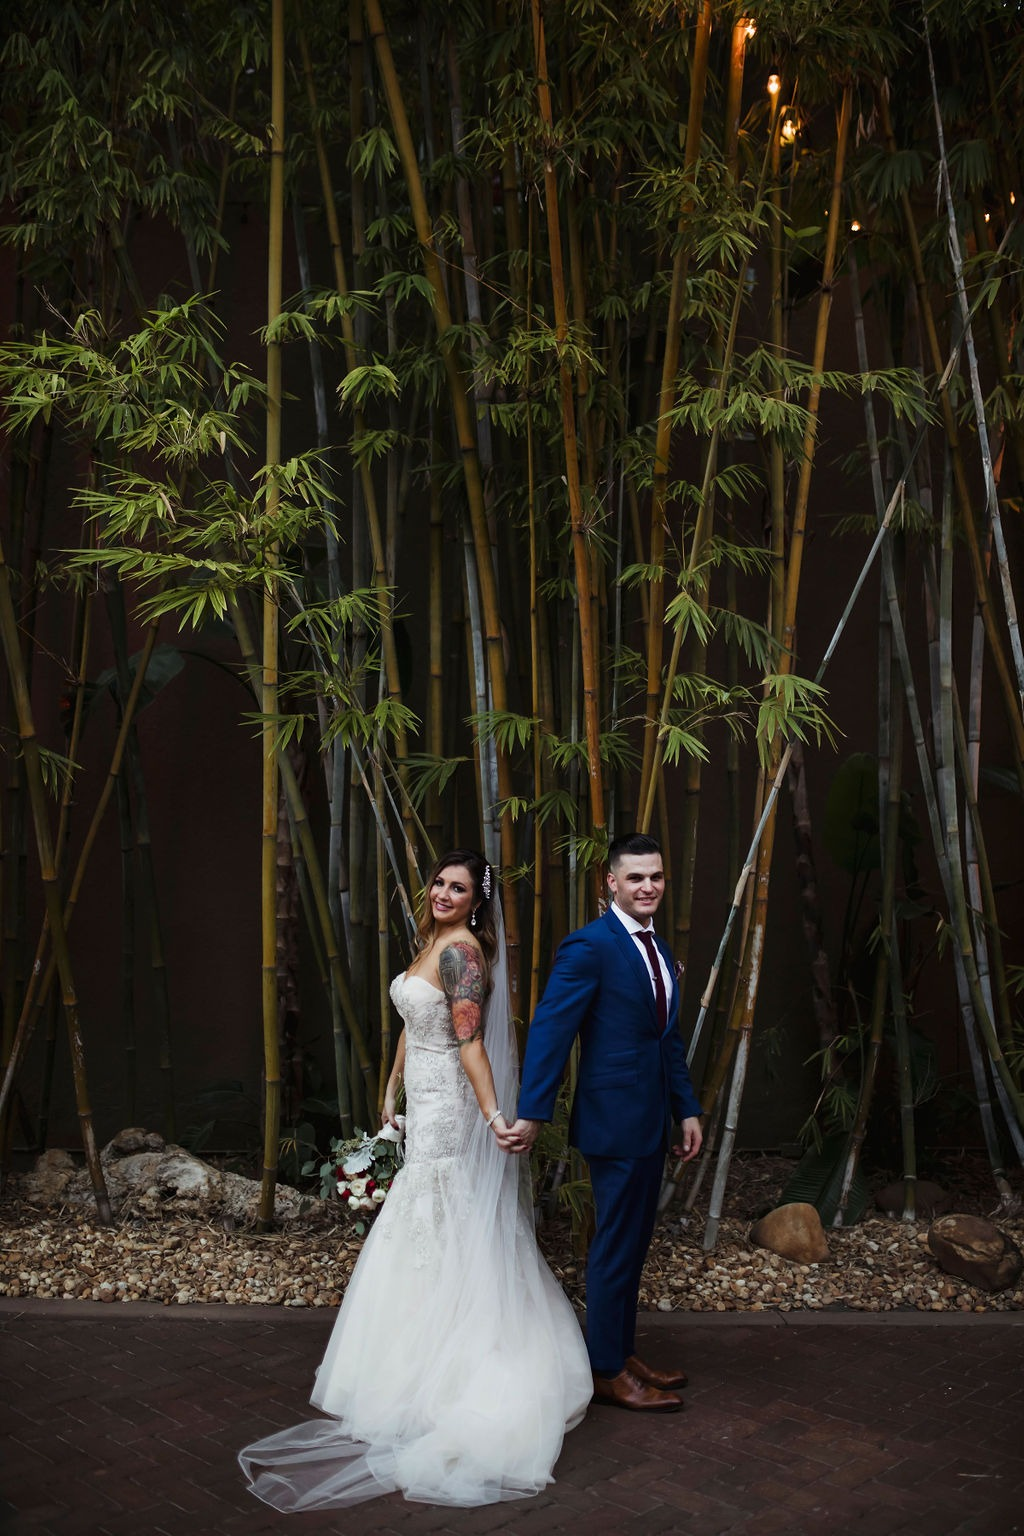 St. Pete wedding couple portrait at NOVA 535 in bamboo courtyard for Industrial-Chic St. Pete Wedding